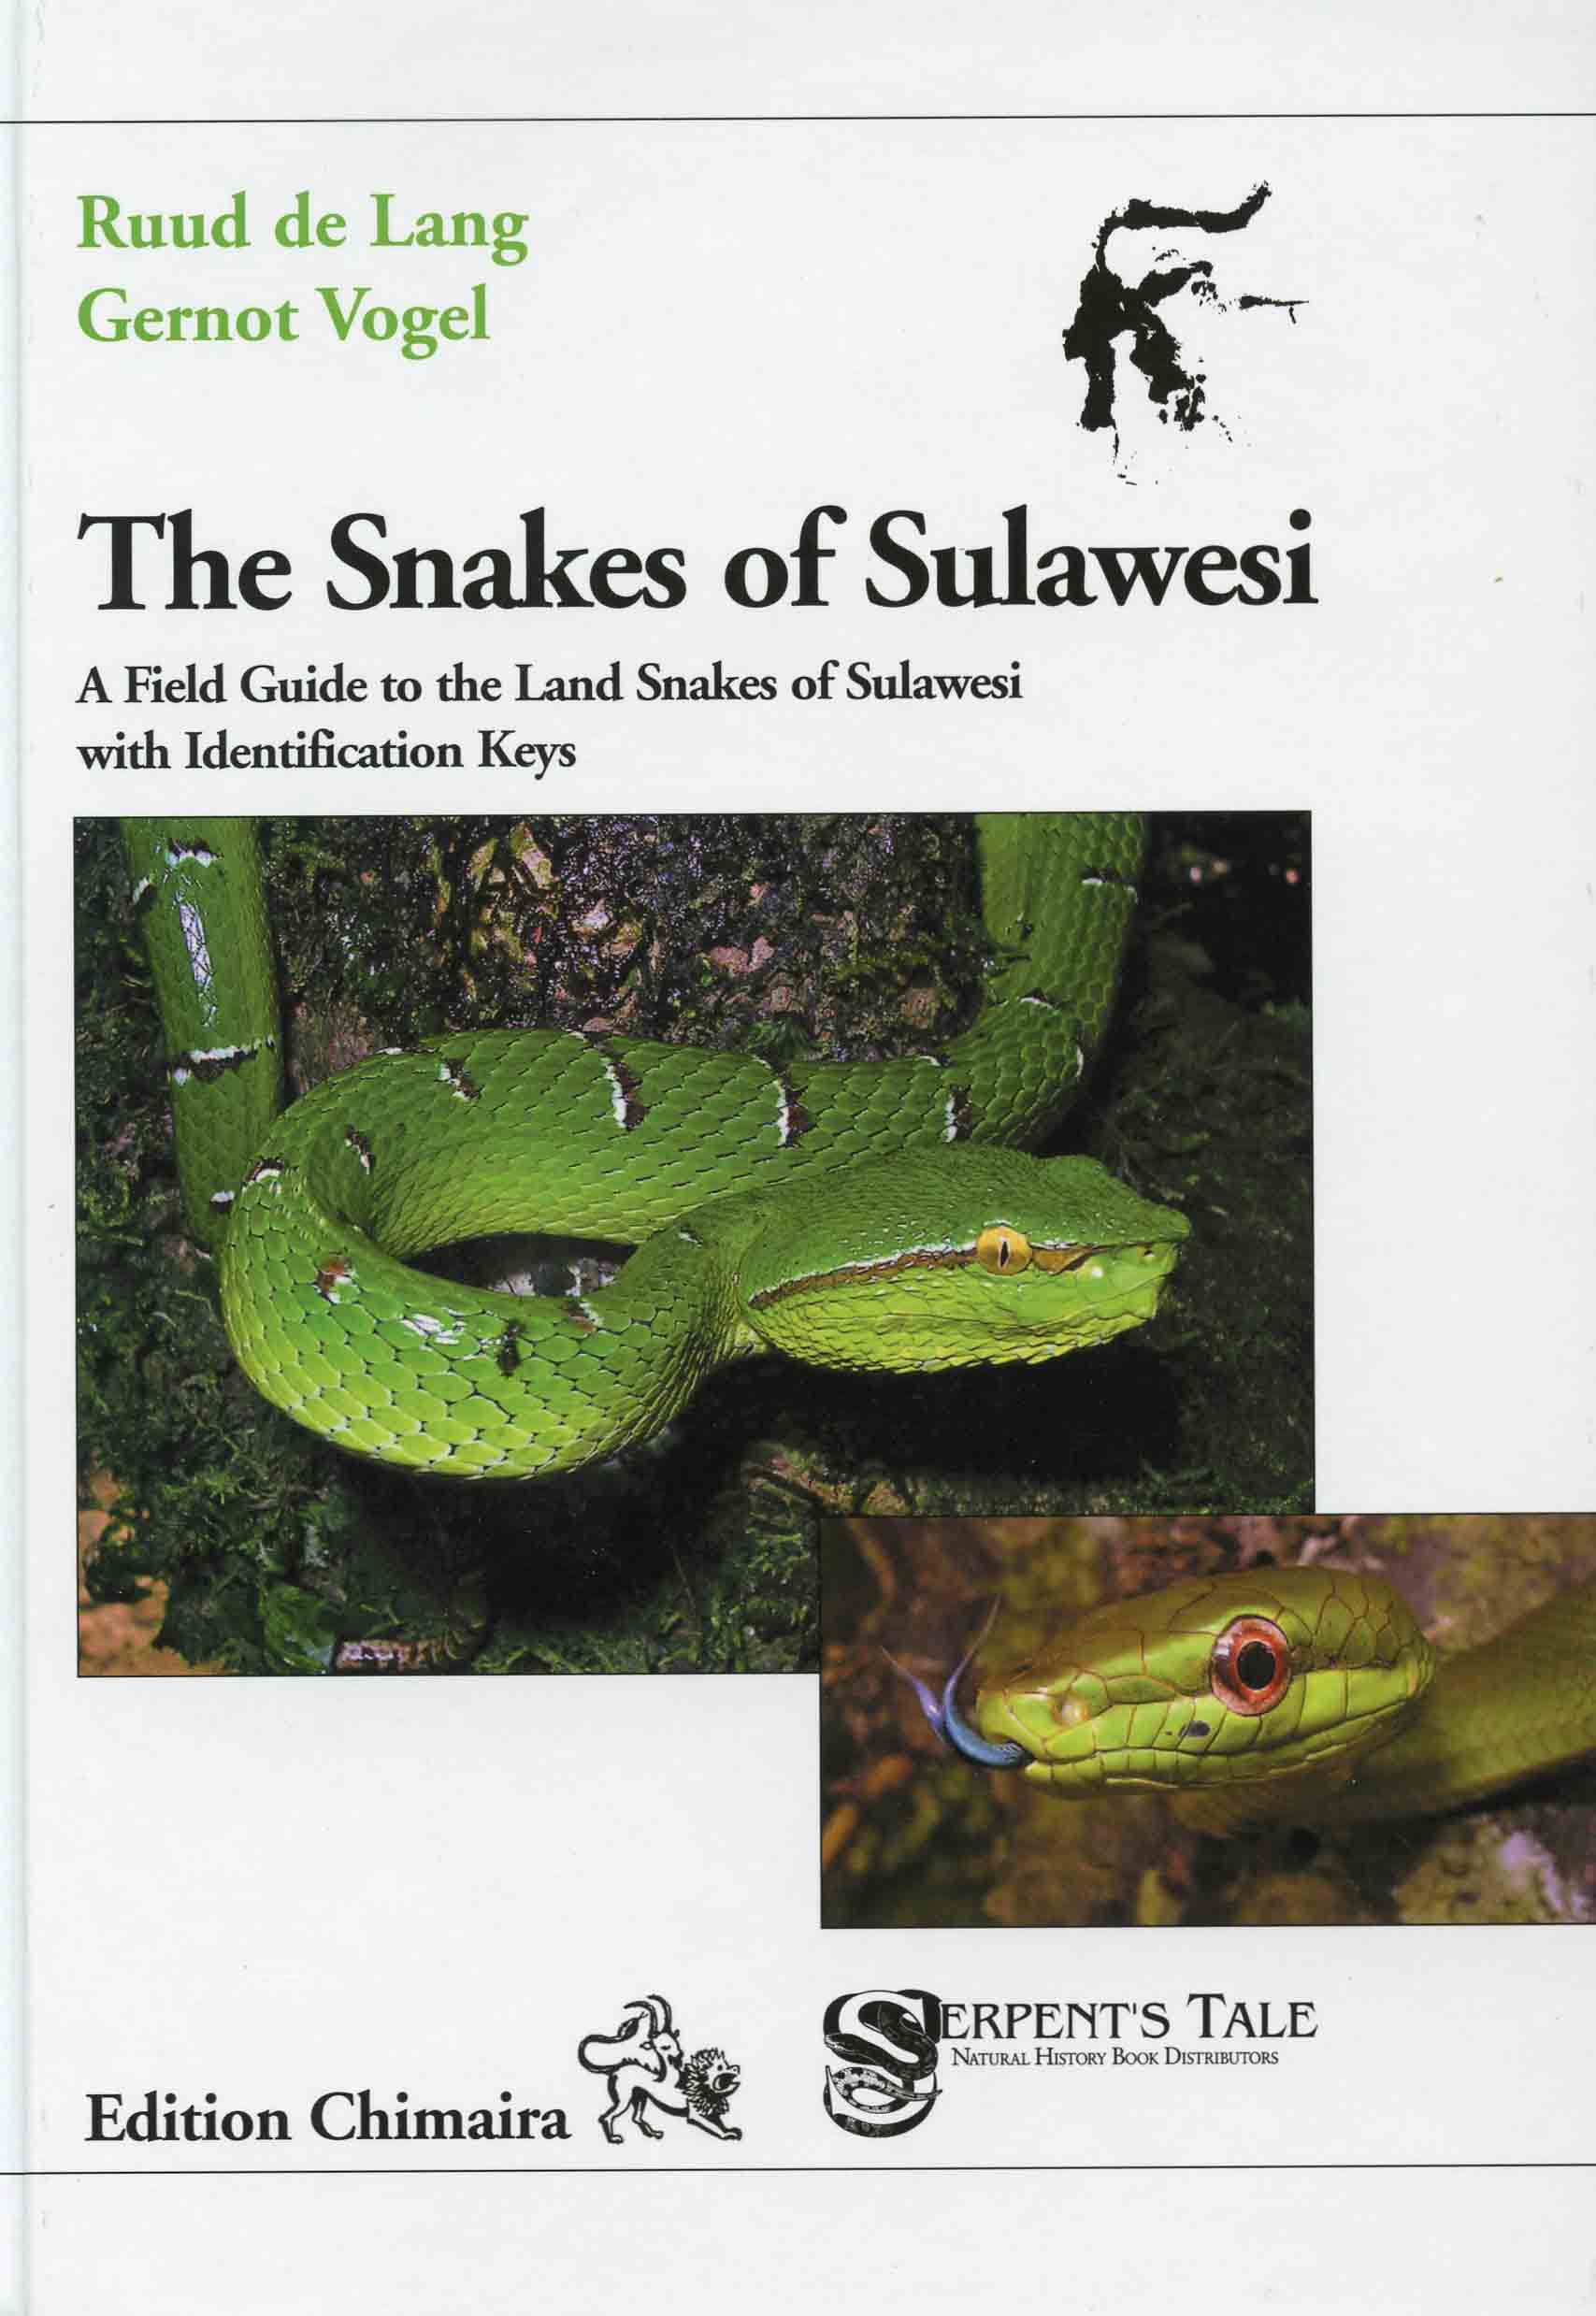 Image for The Snakes of Sulawesi: A Field Guide to the Land Snakes of Sulawesi with Identification Keys,